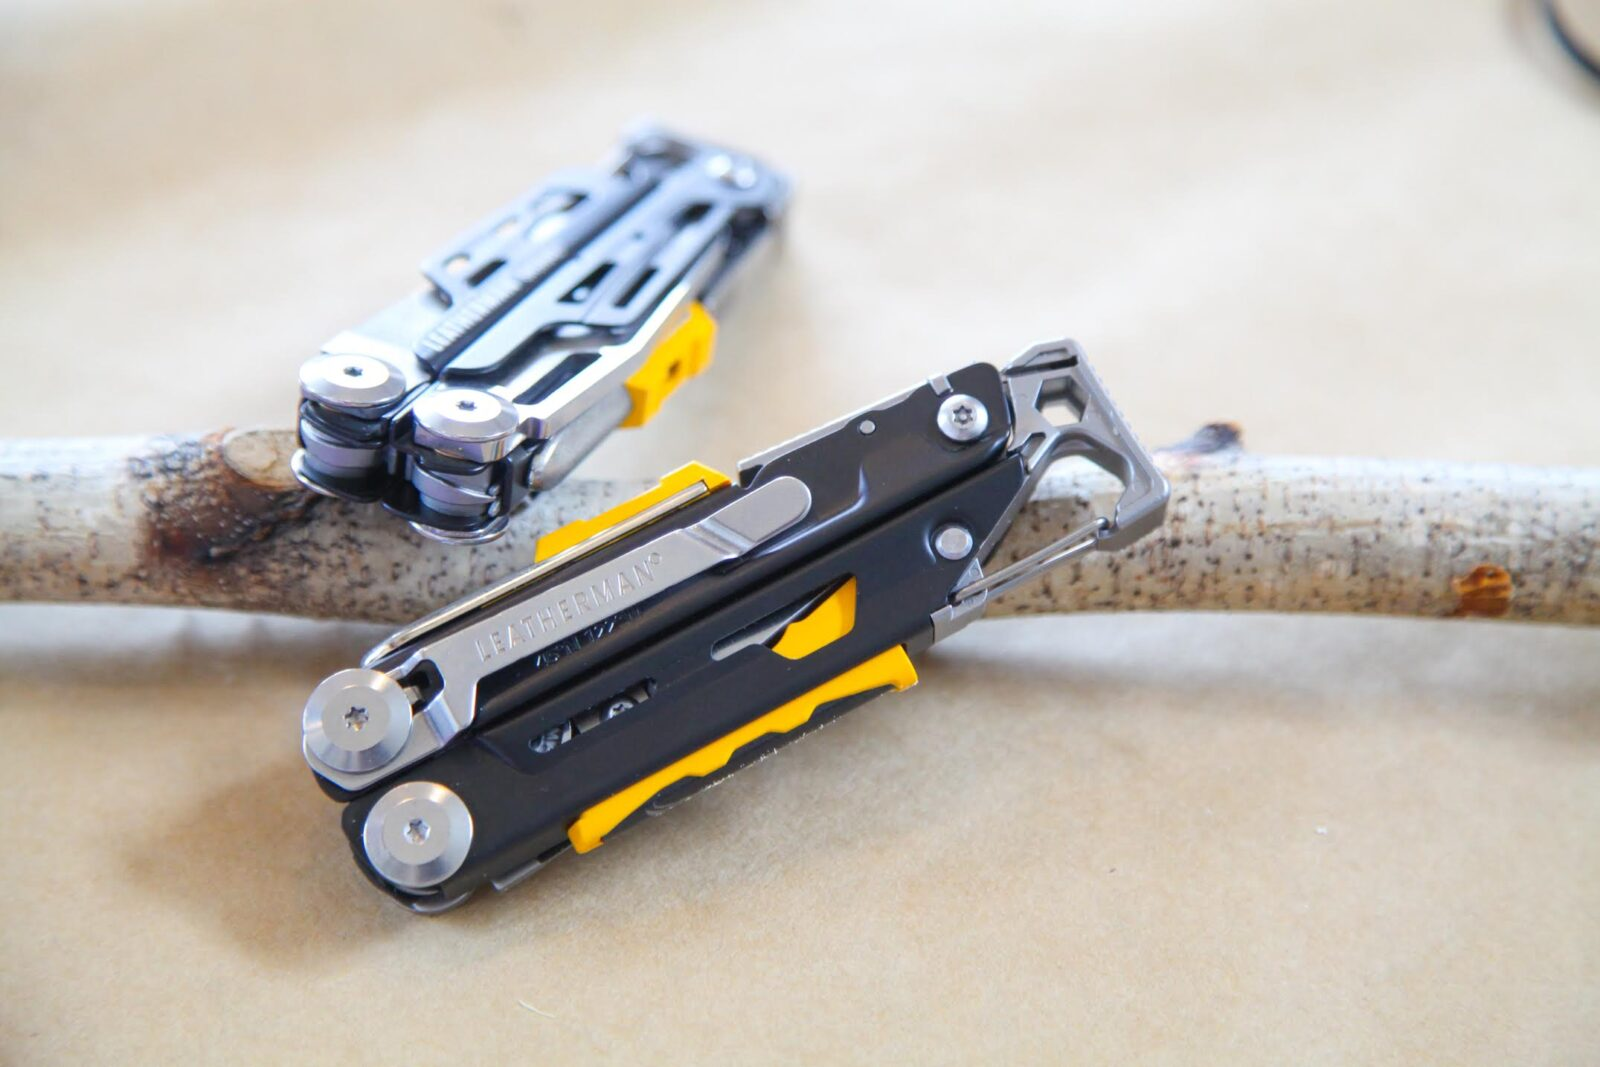 Leatherman Signal edit seven tools editors picks